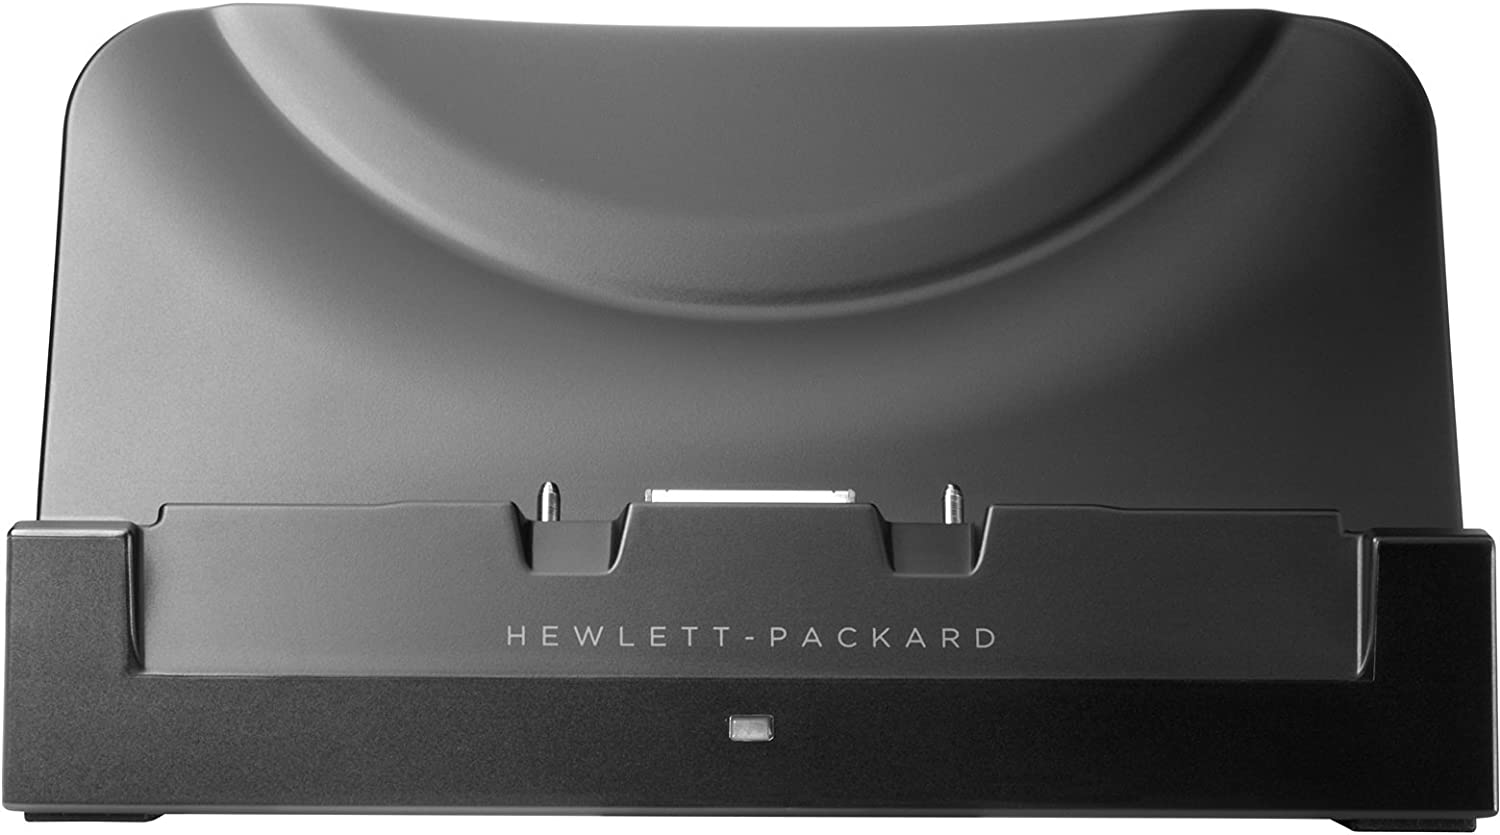 HP M0E06AA Elite Pad Rugged Tablet Docking Adapter, Black